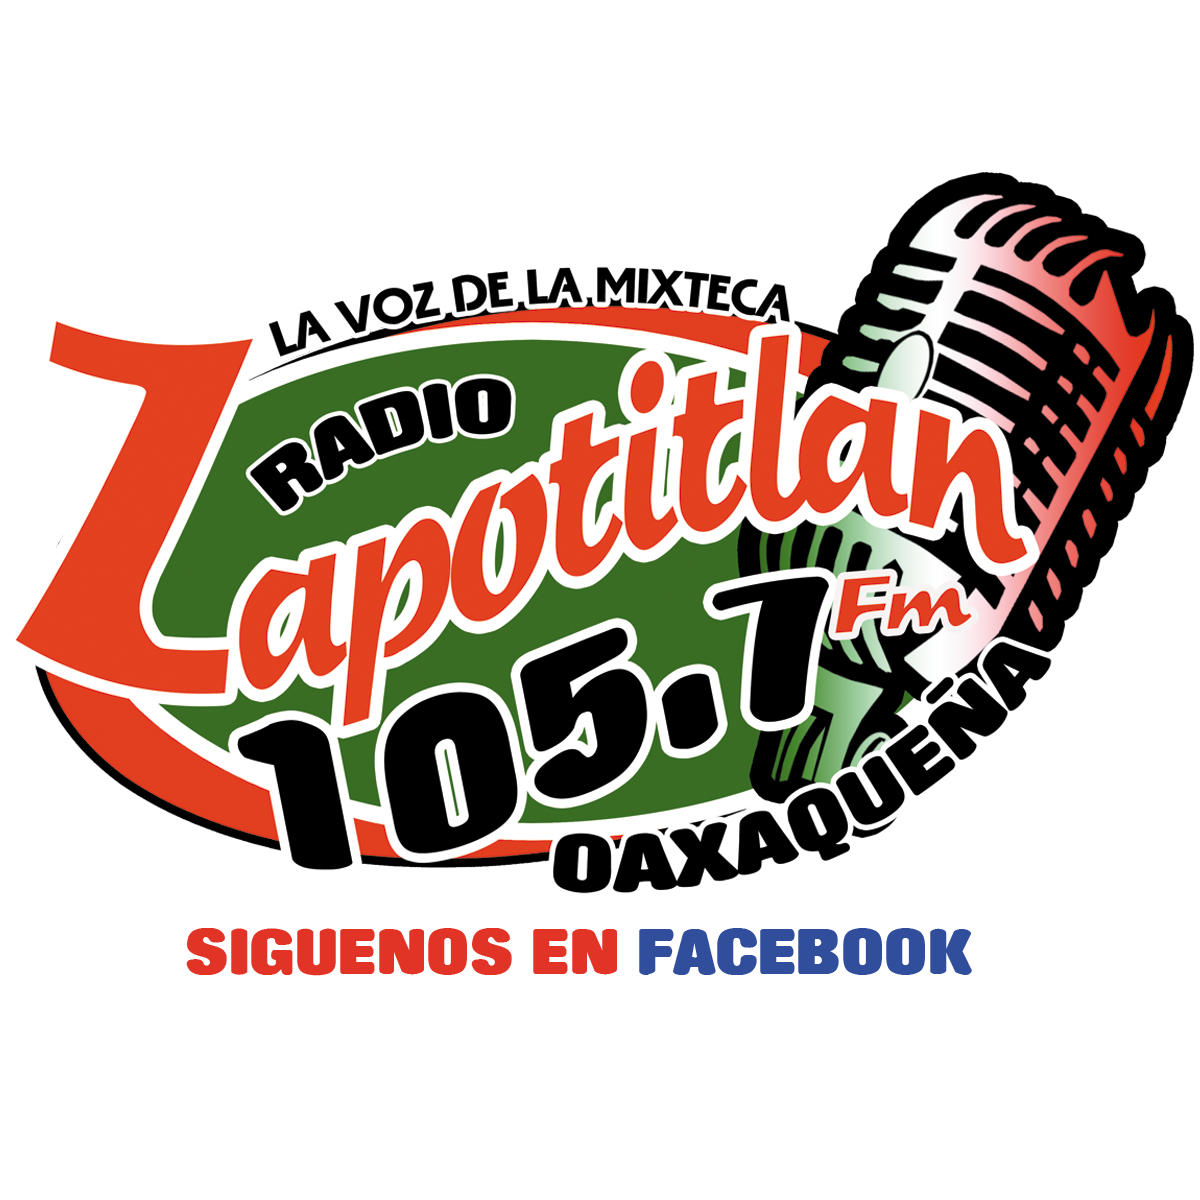 Zapotitlan radio